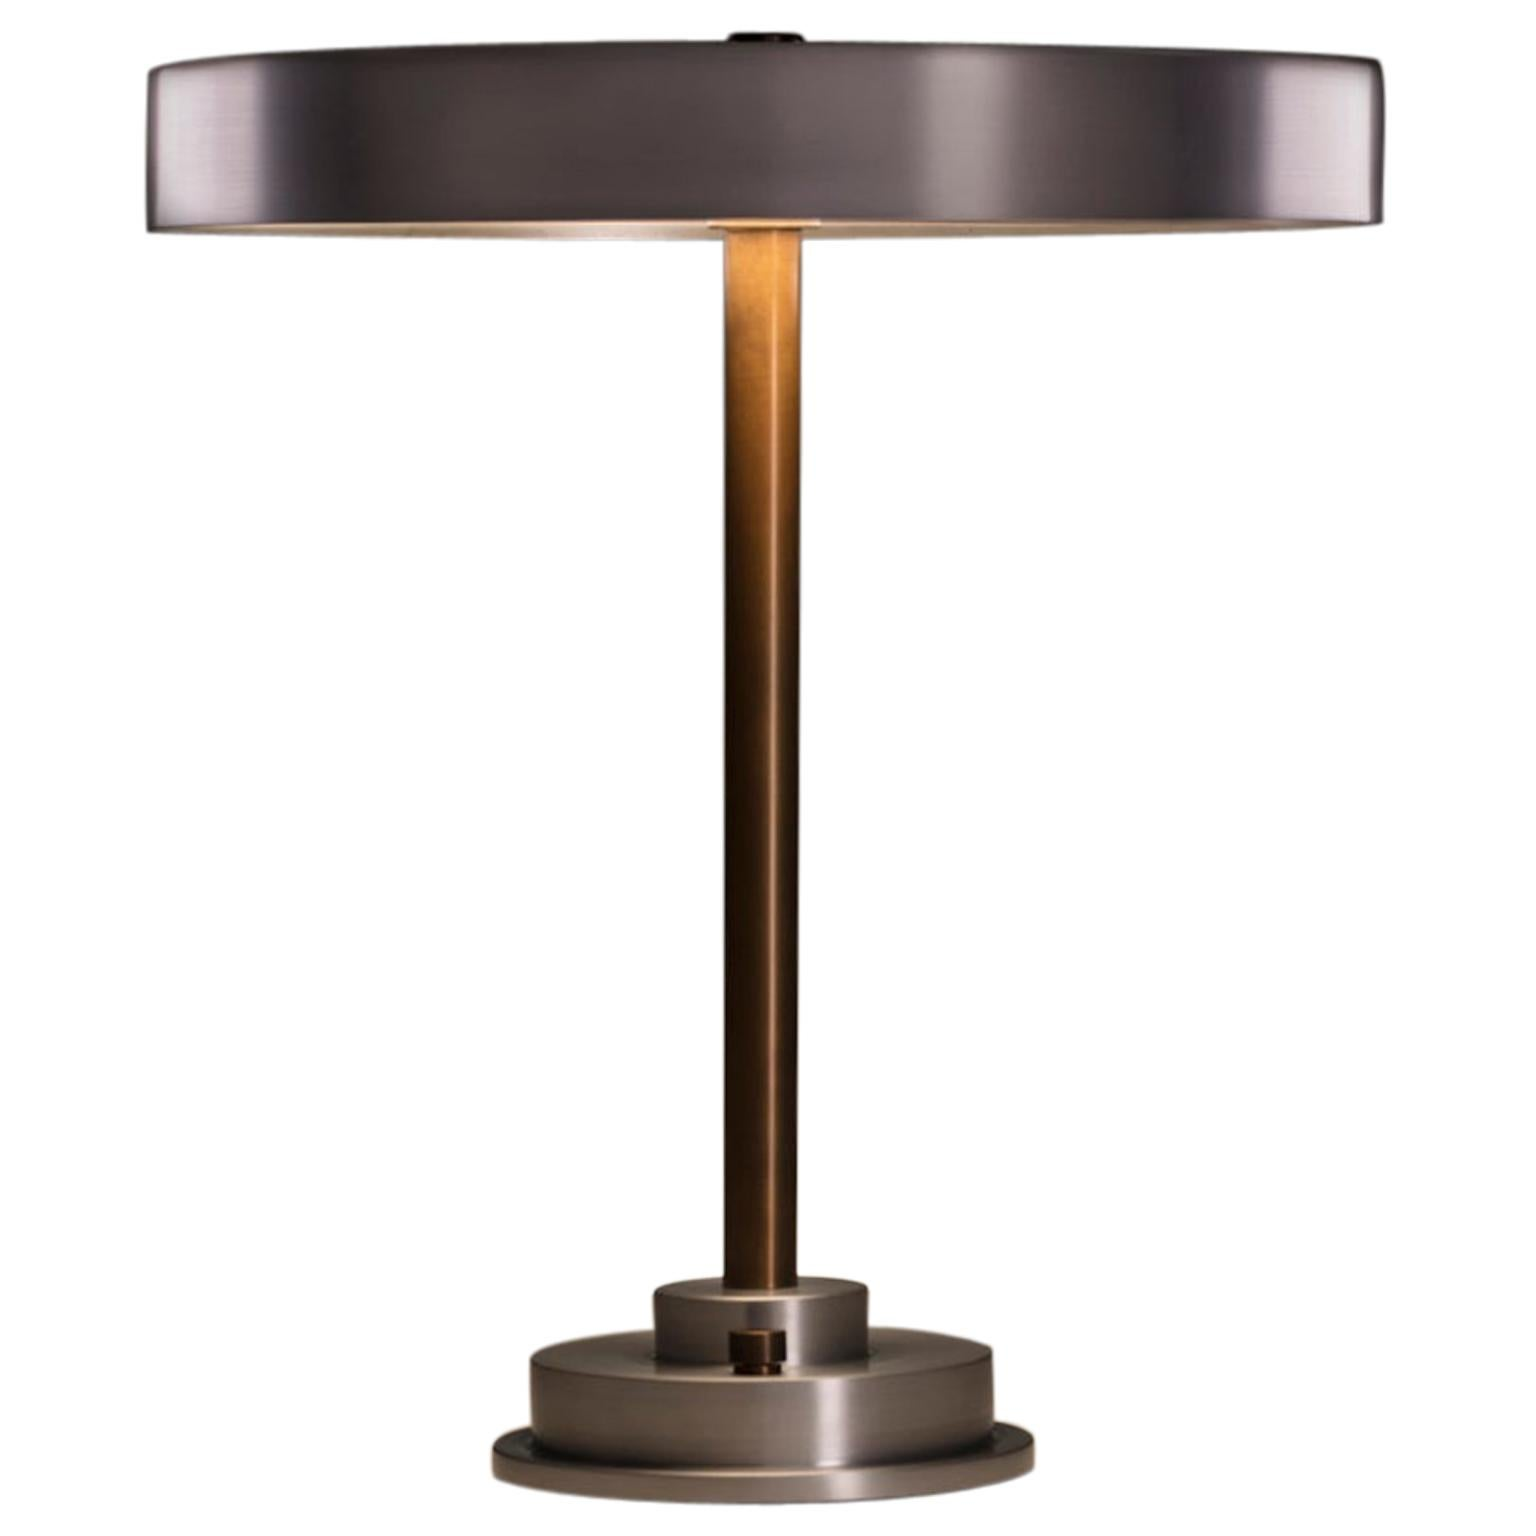 Modern Industrial Table Lamp with Burnished Aluminum Shade and Brass Hardware